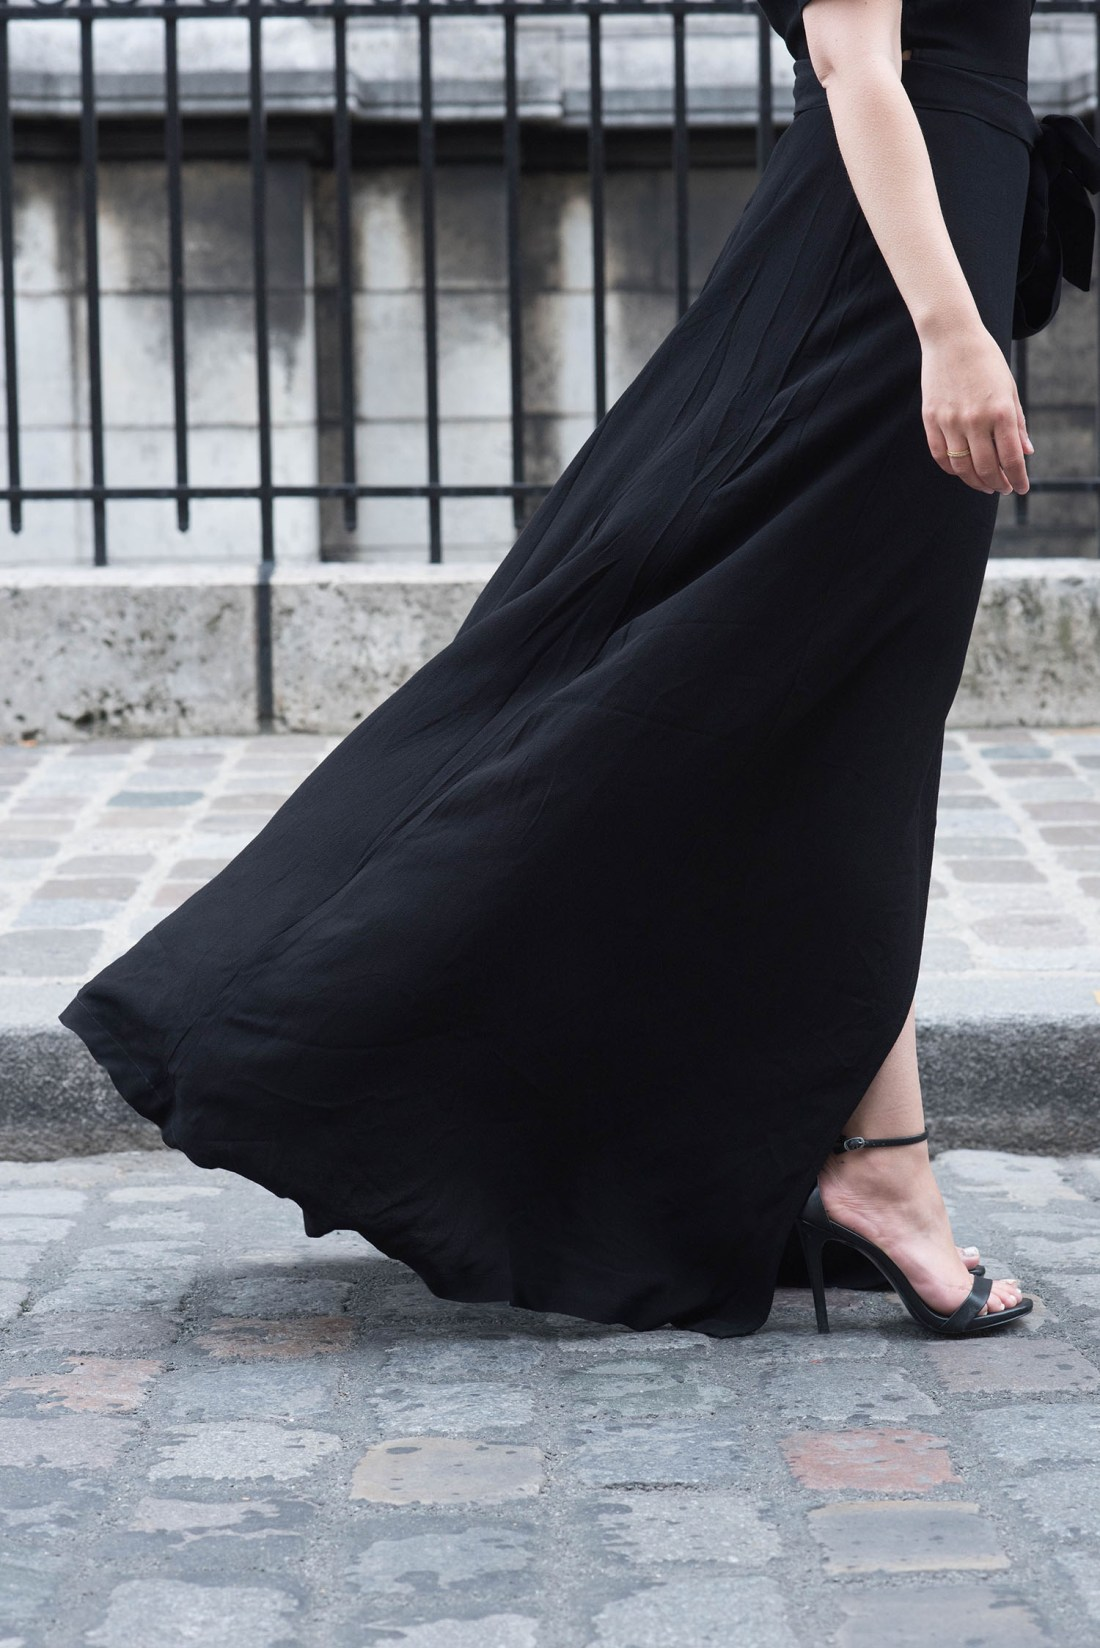 Outfit details on fashion blogger Cee Fardoe of Coco & Vera, including and Ivy & Oak black maxi dress and Steve Madden Stecy sandals